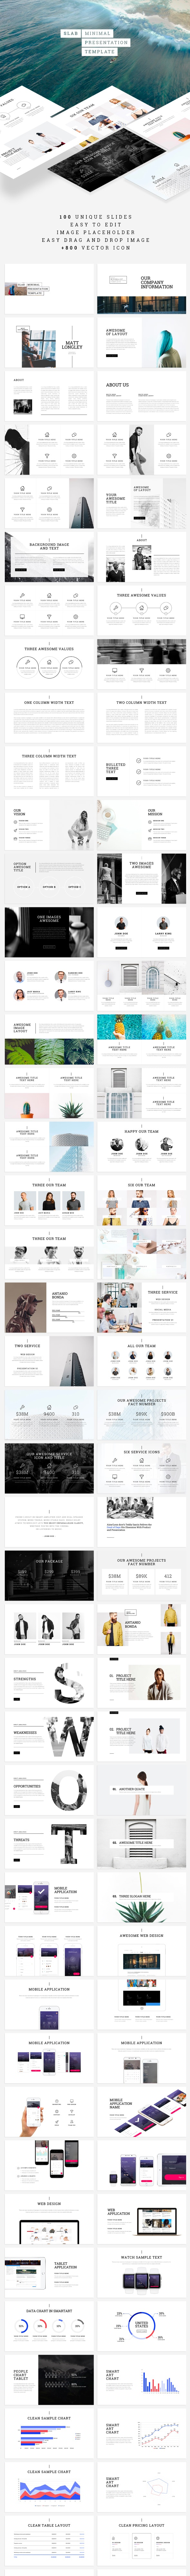 Slab Keynote Template - Business Keynote Templates